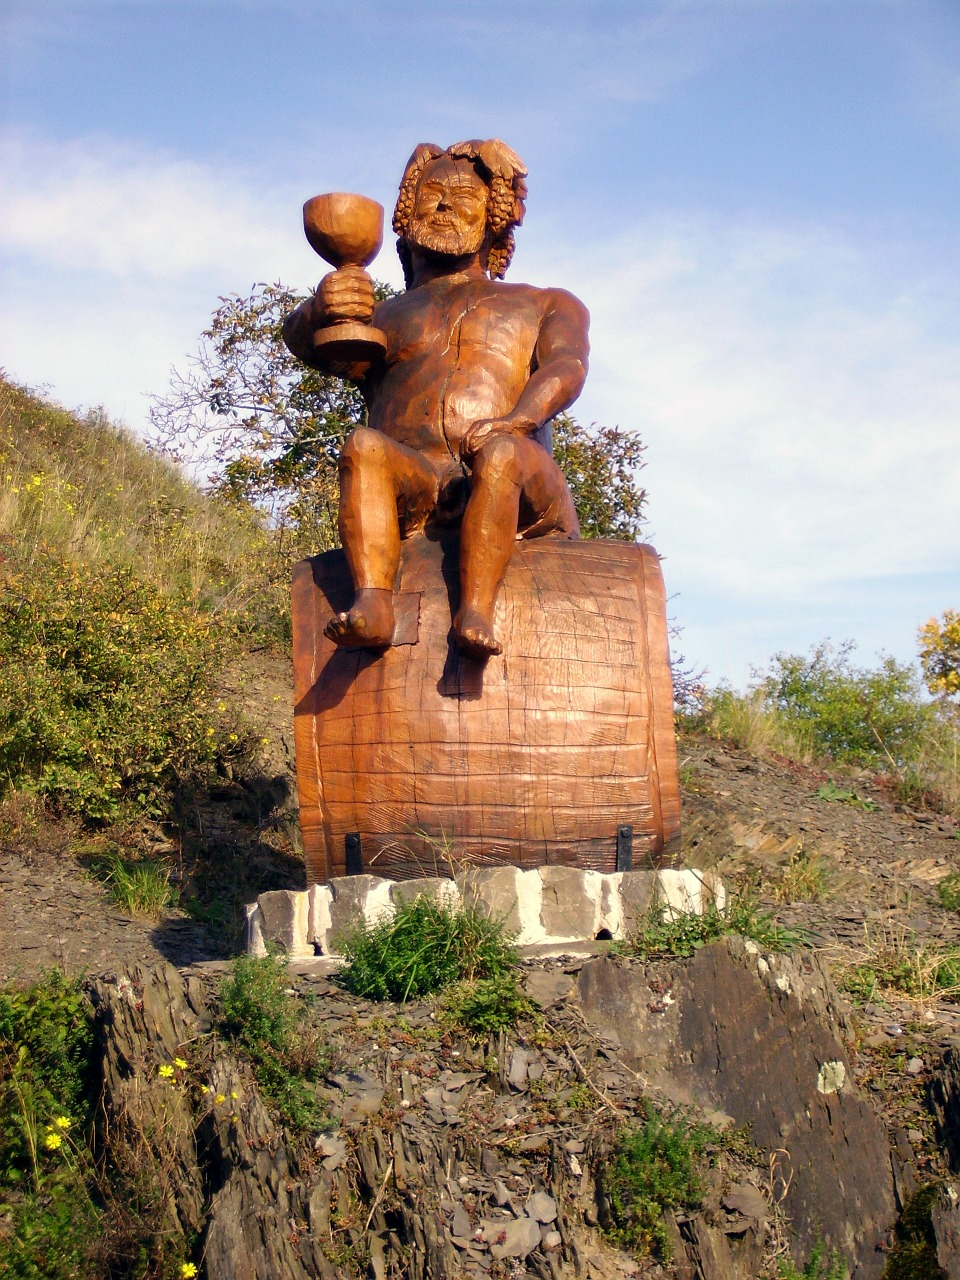 vineyard bacchus sculpture free photo